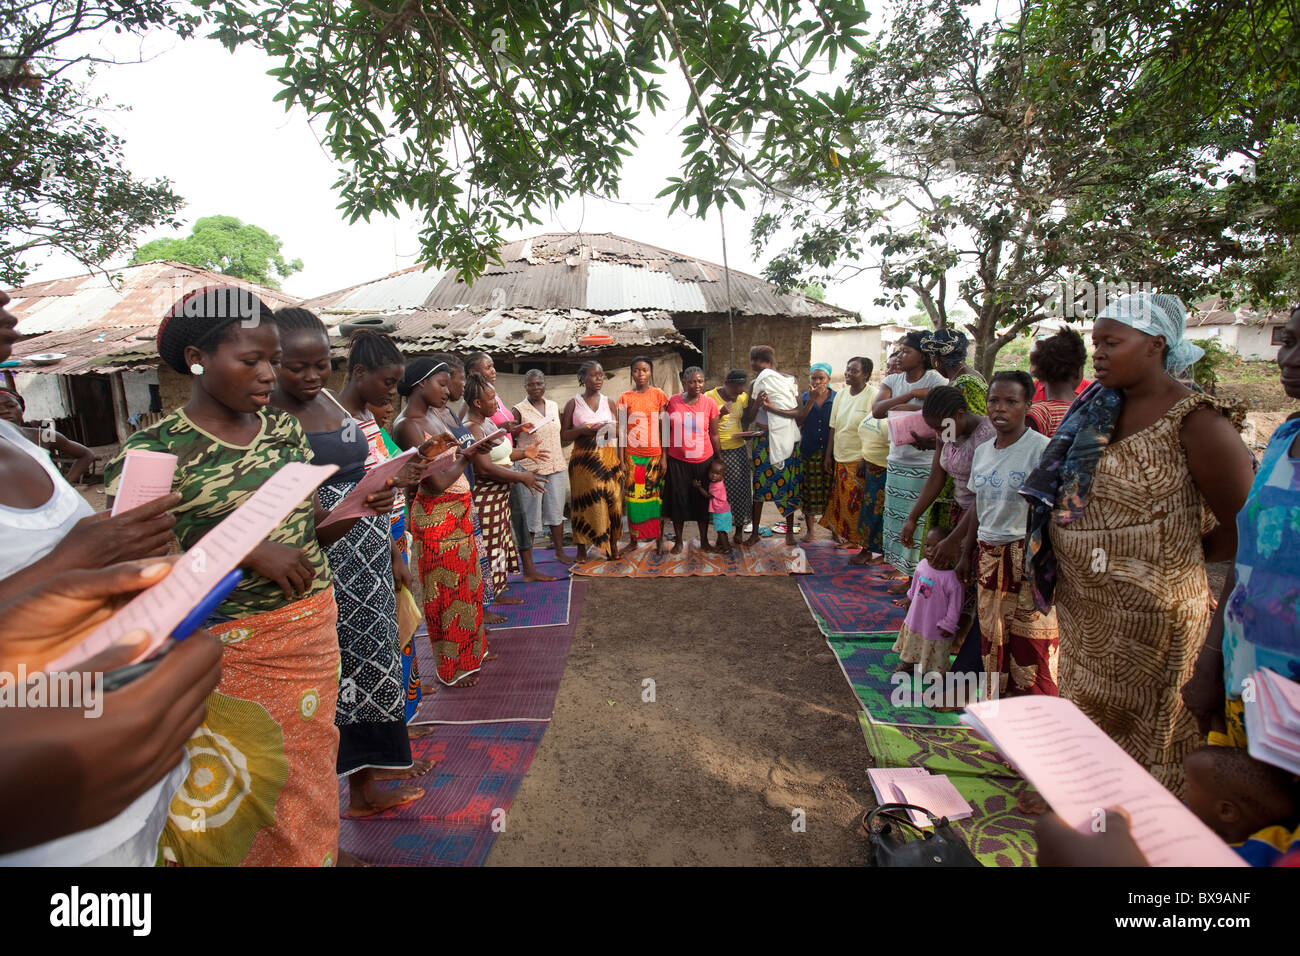 Women attend a community microfinance meeting in Kakata, Liberia, West Africa. - Stock Image